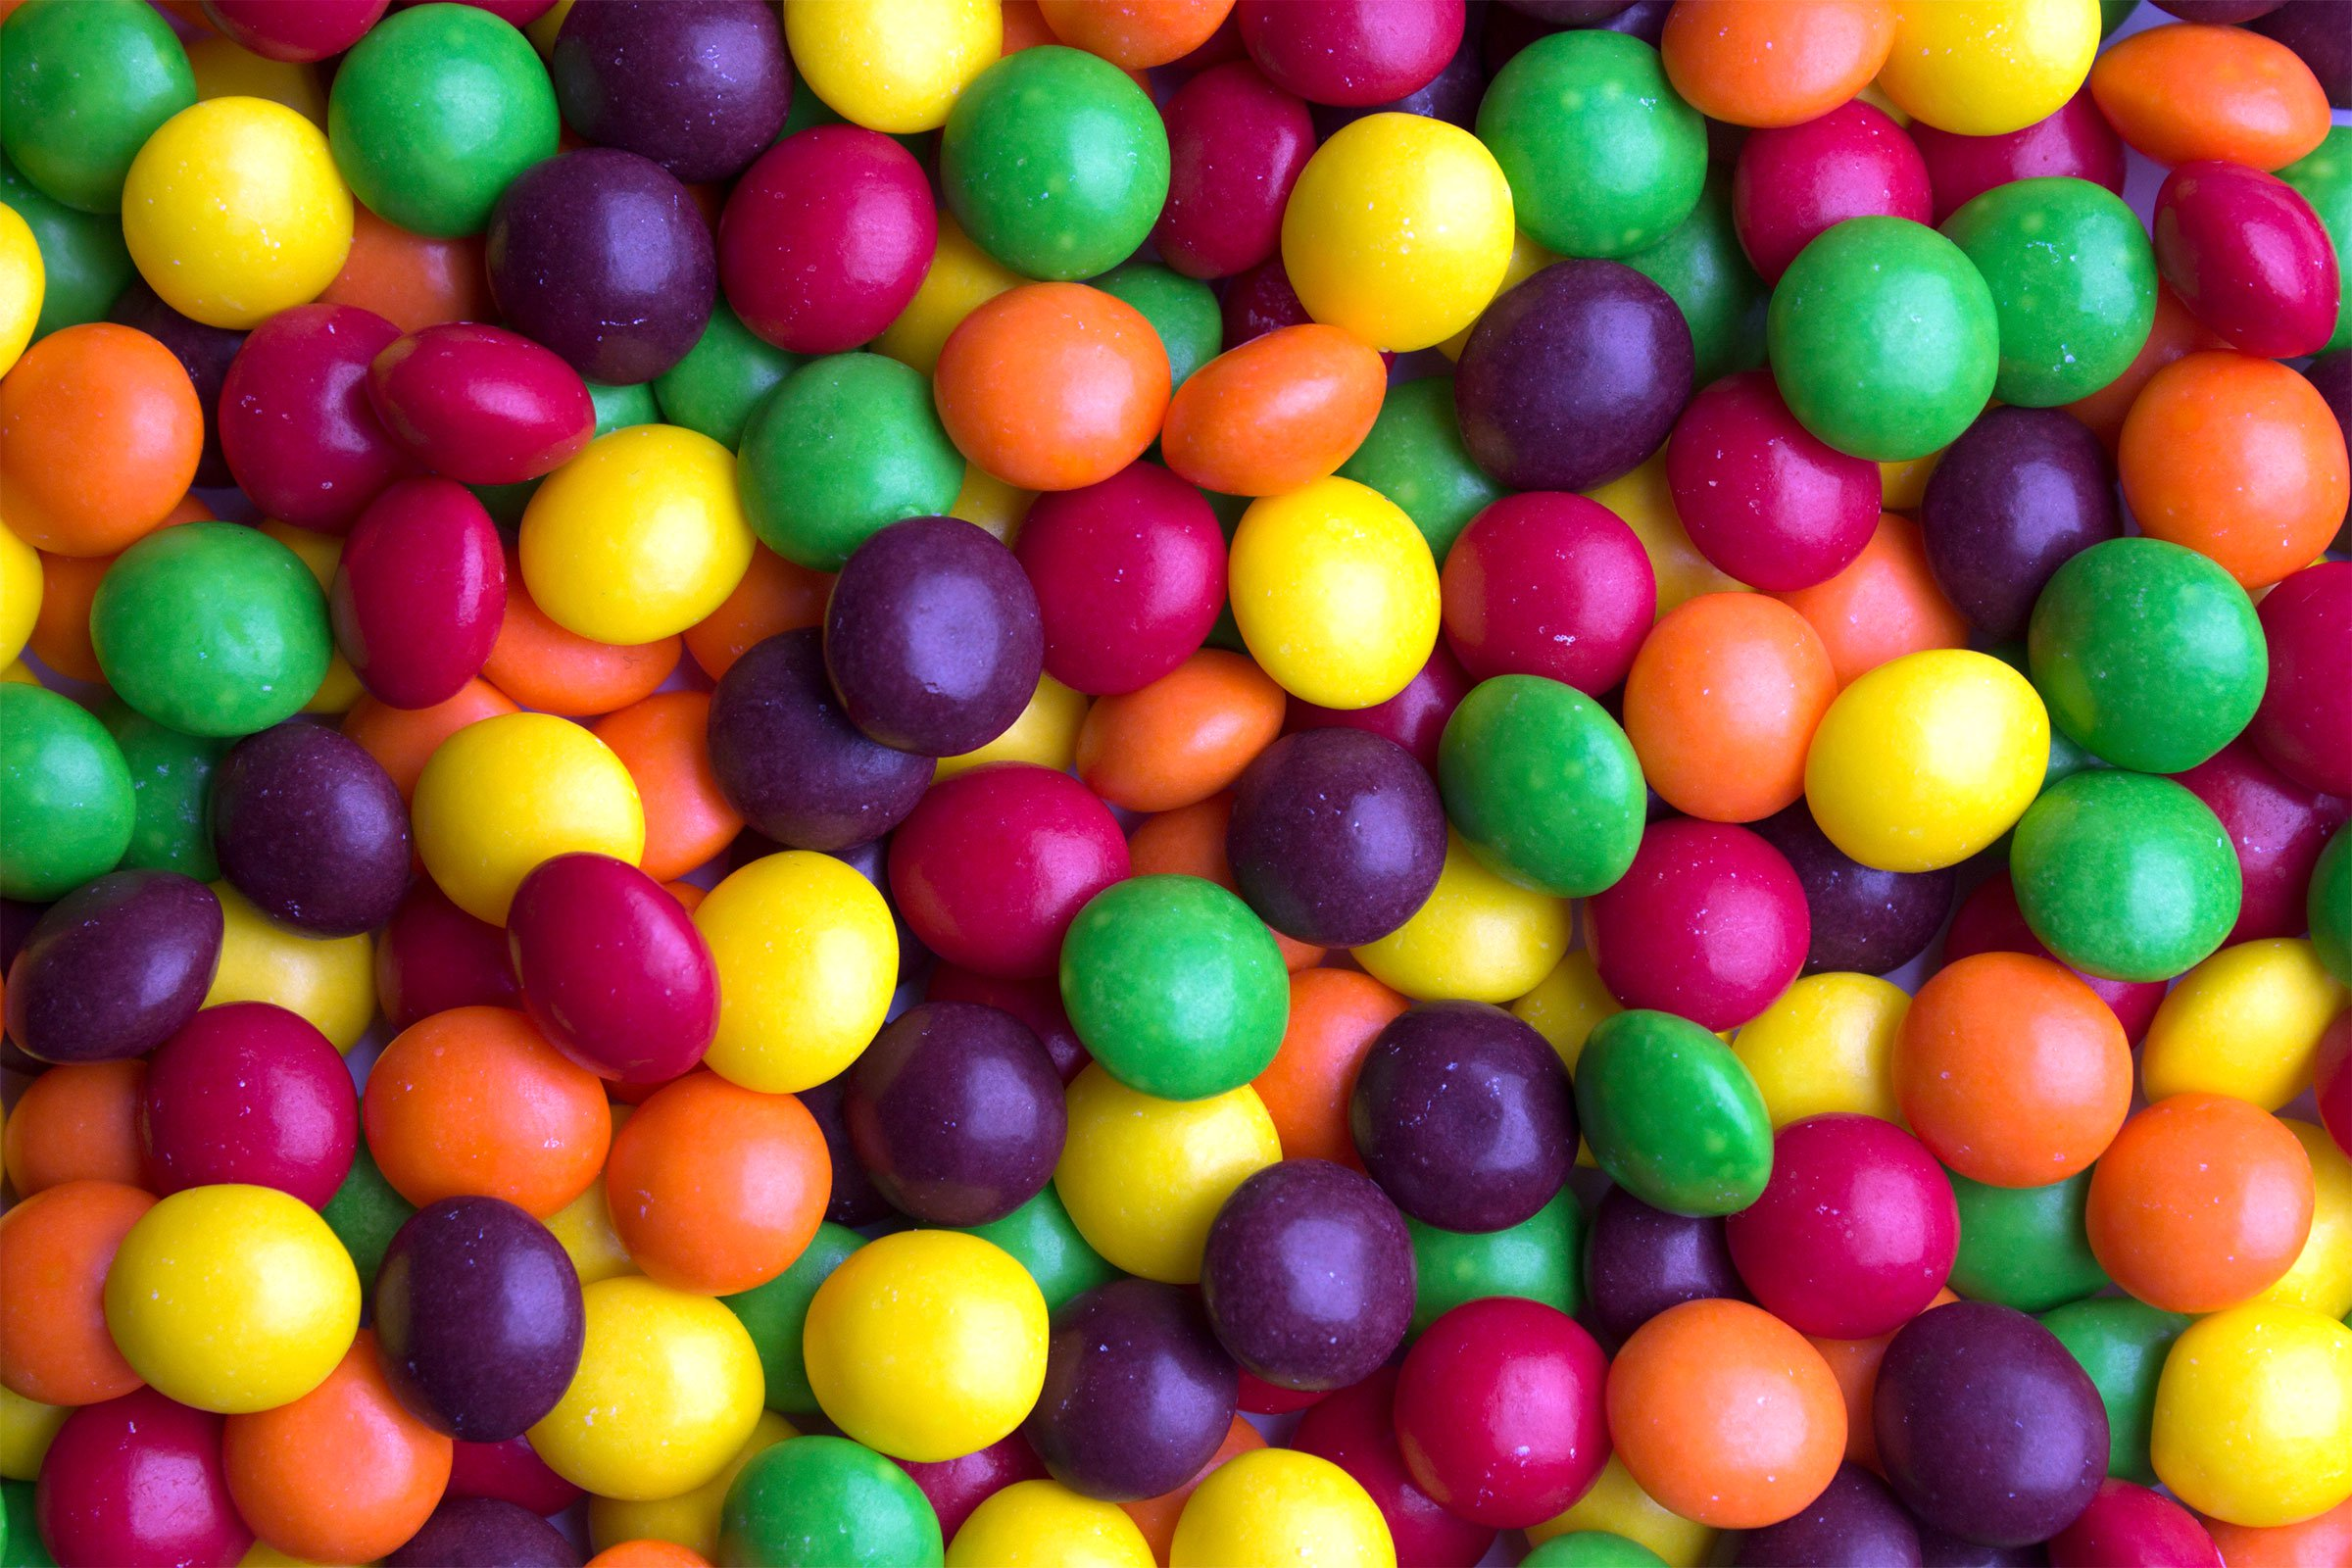 Believe It Or Not All Skittles Are The Same Flavor